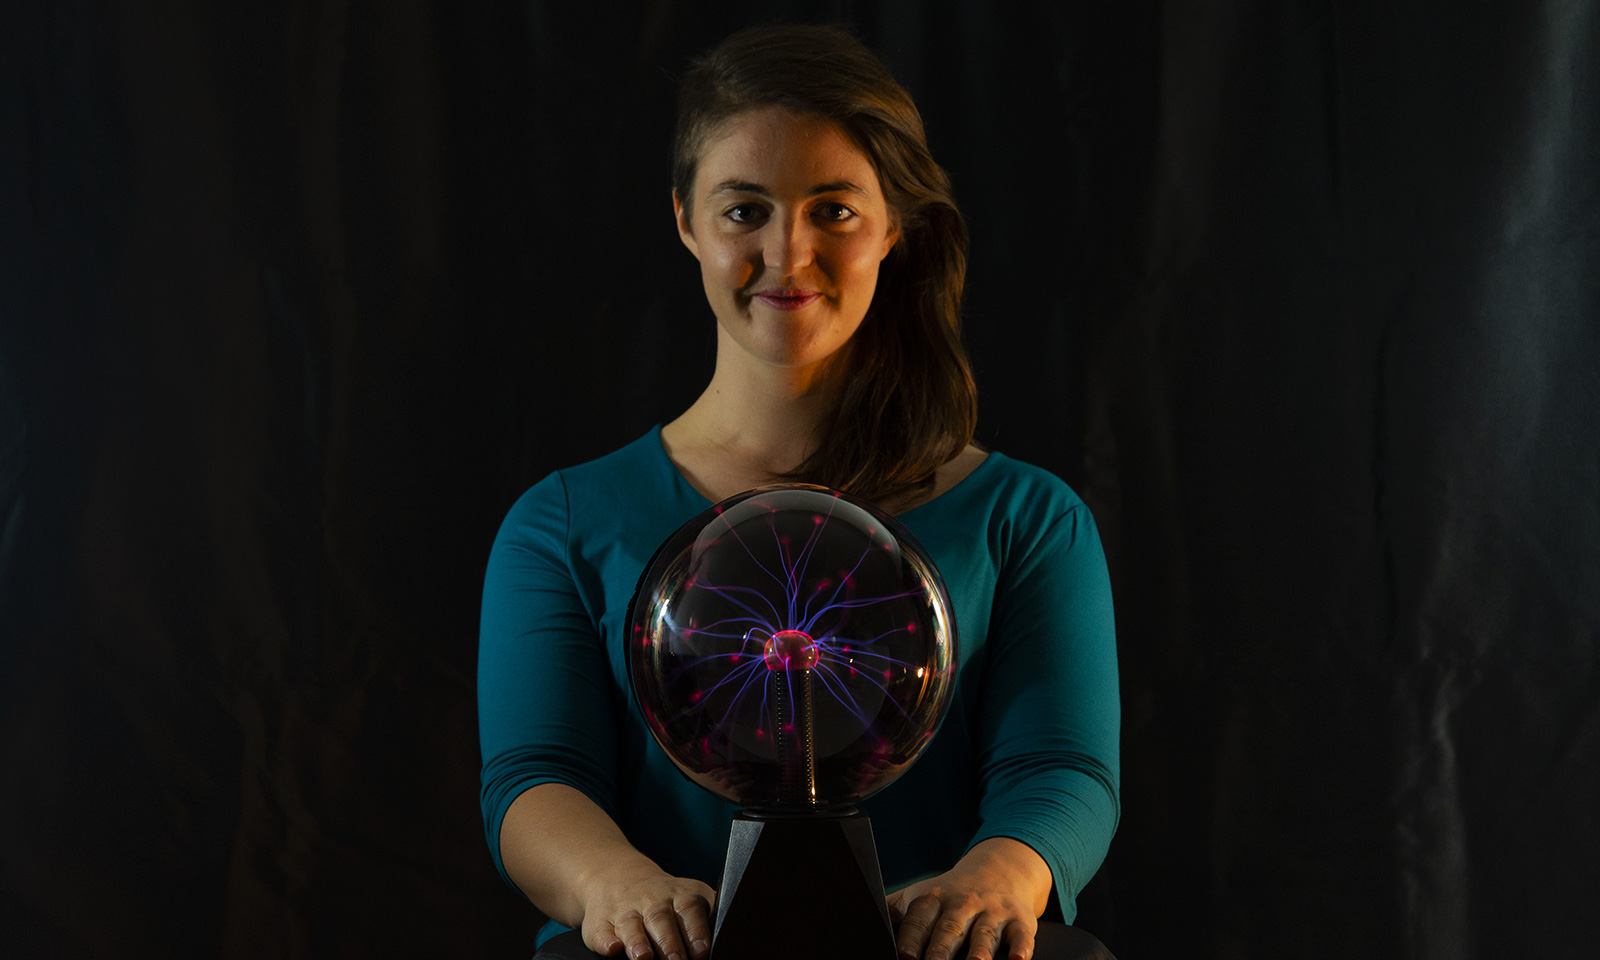 Natasha stands over a glowing plasma ball.